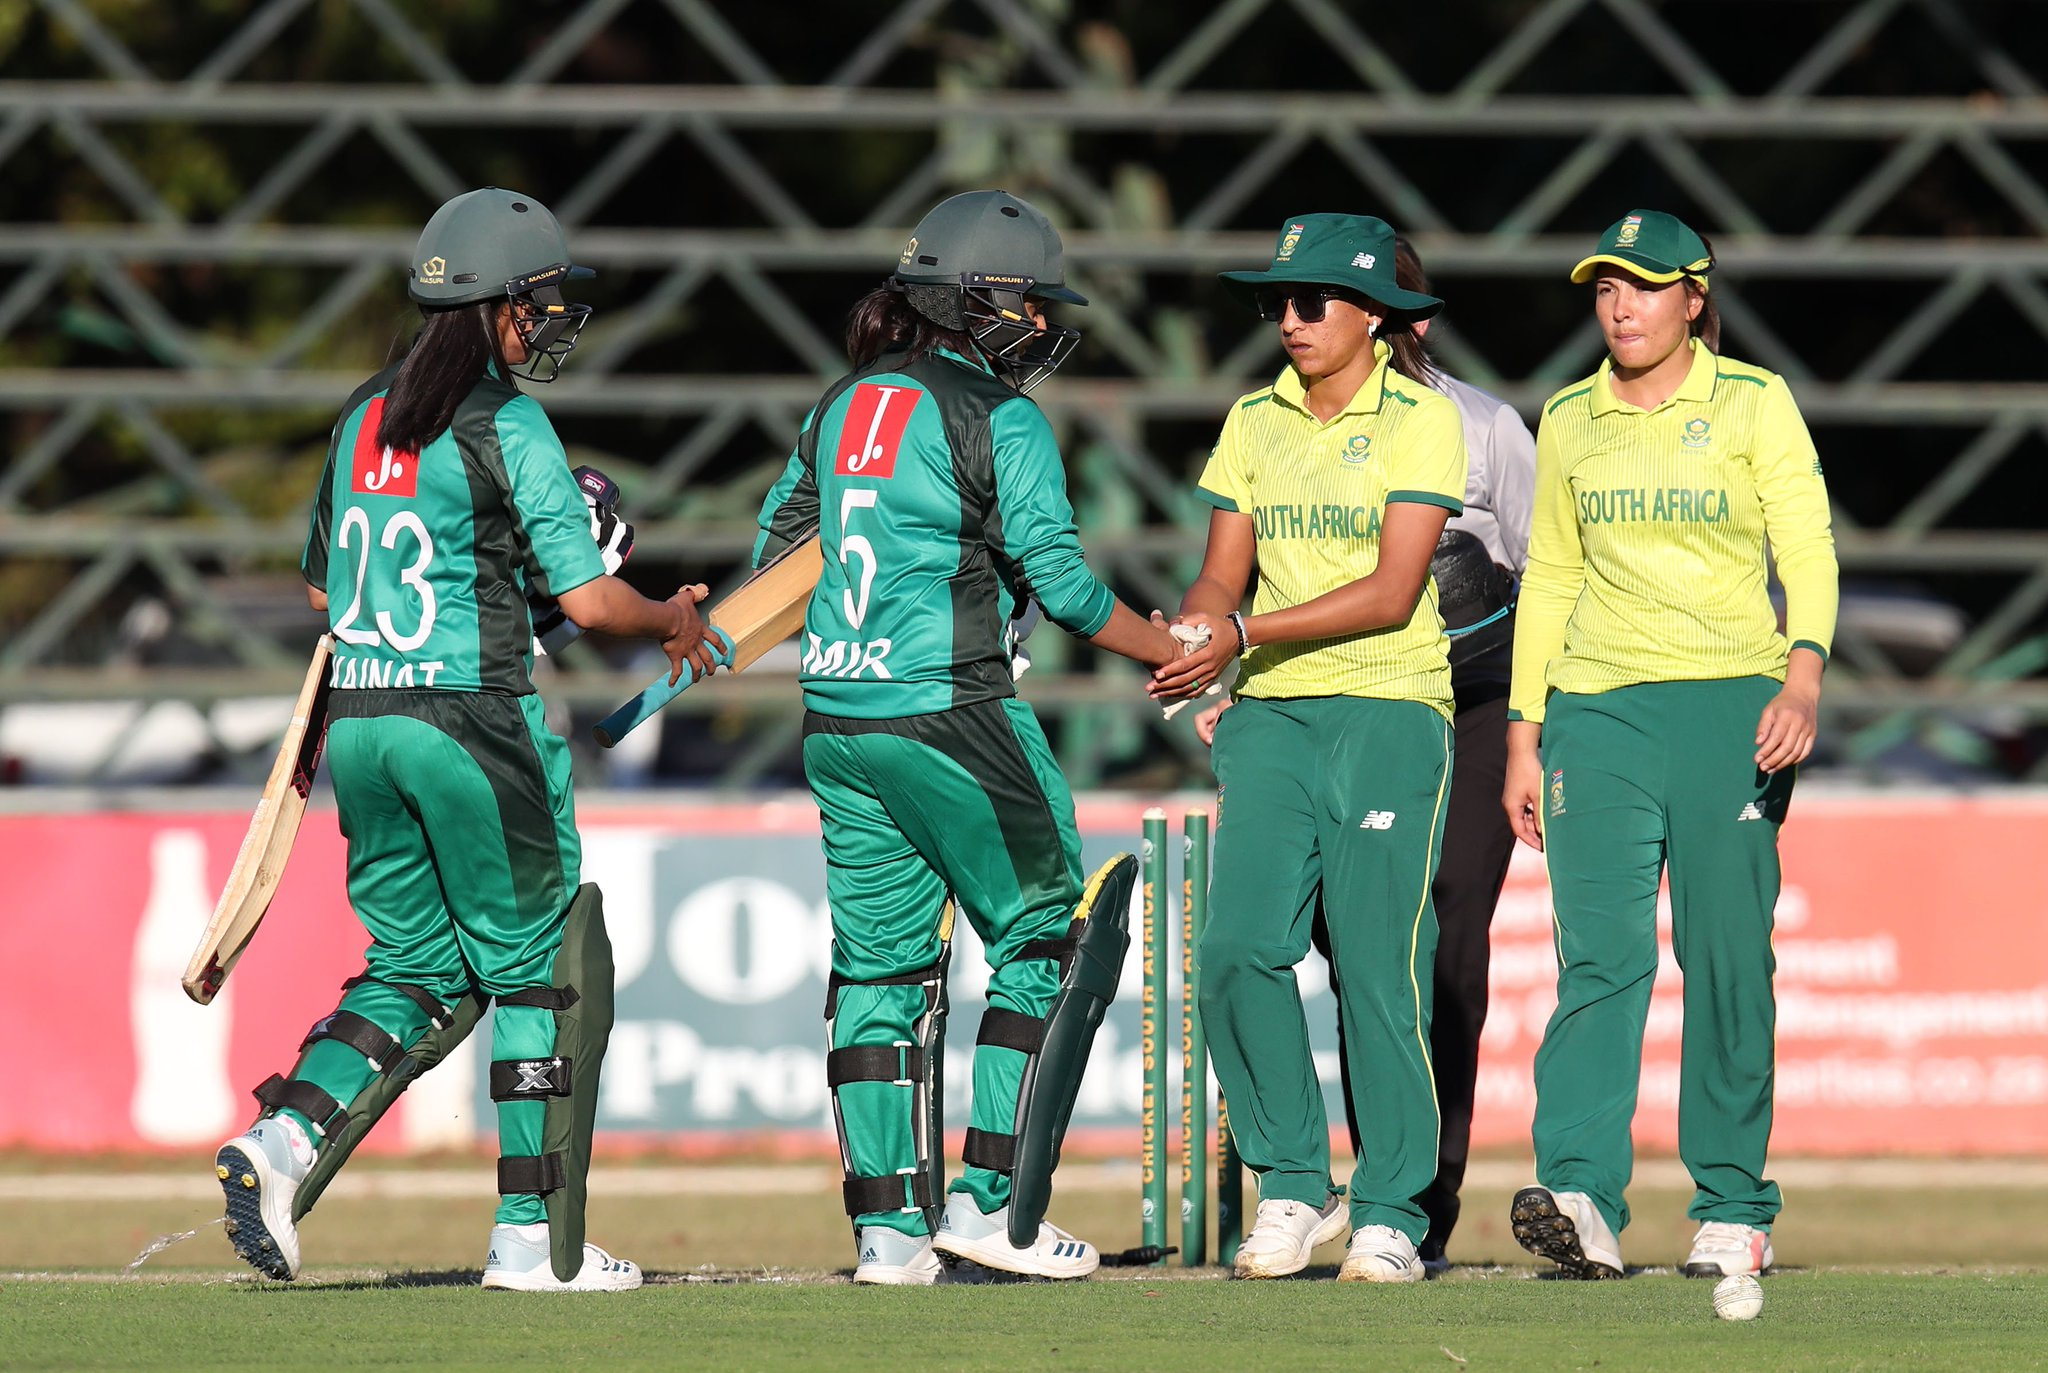 South Africa National Cricket Team Twitter Photo